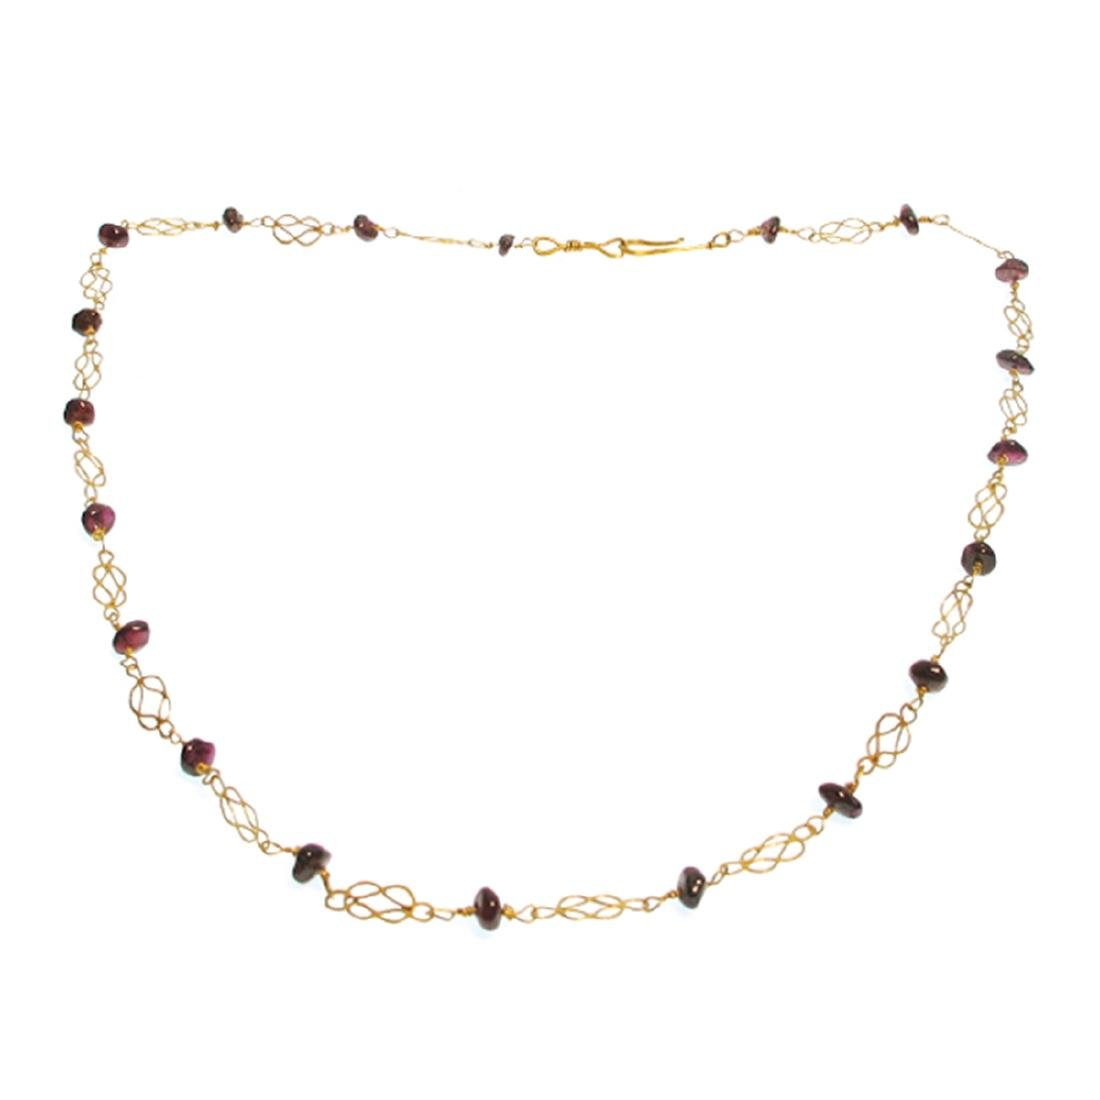 Roman Gold and Garnets Necklace, 3rd-4th Century A.D. - 2